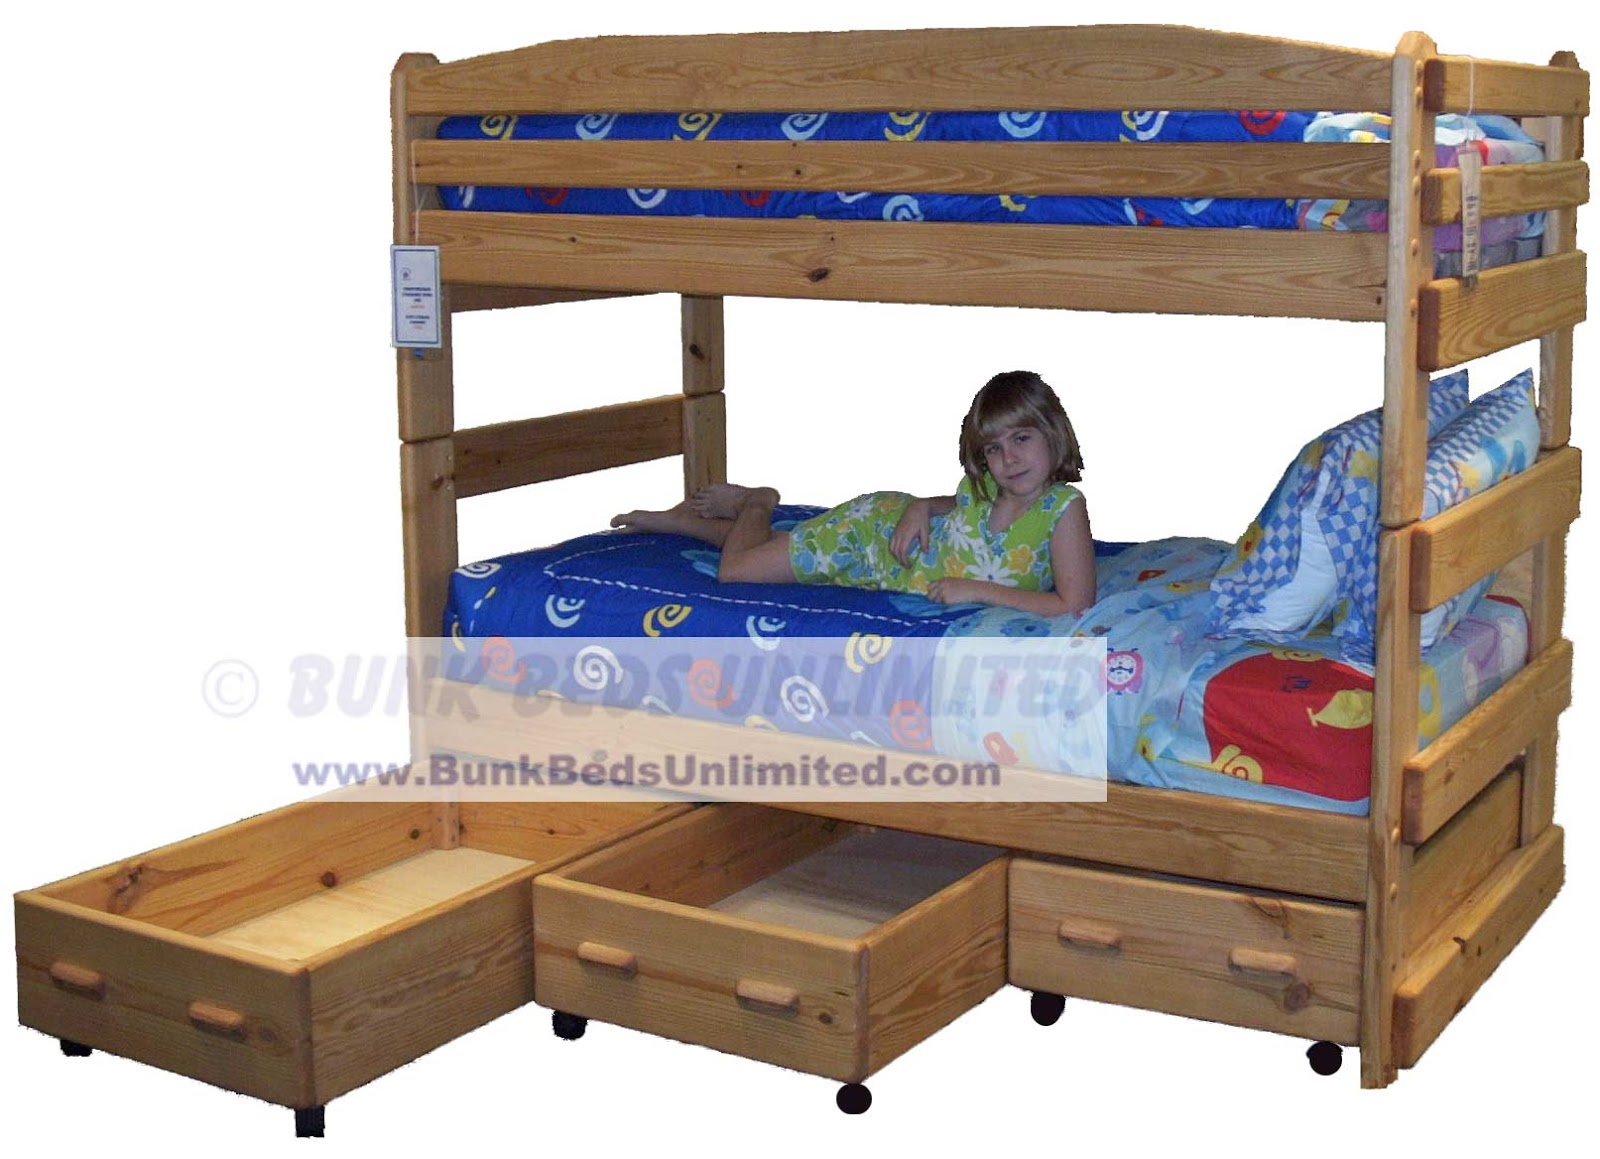 Triple Bunk Bed Plans L Shaped Bunk beds we have plans for